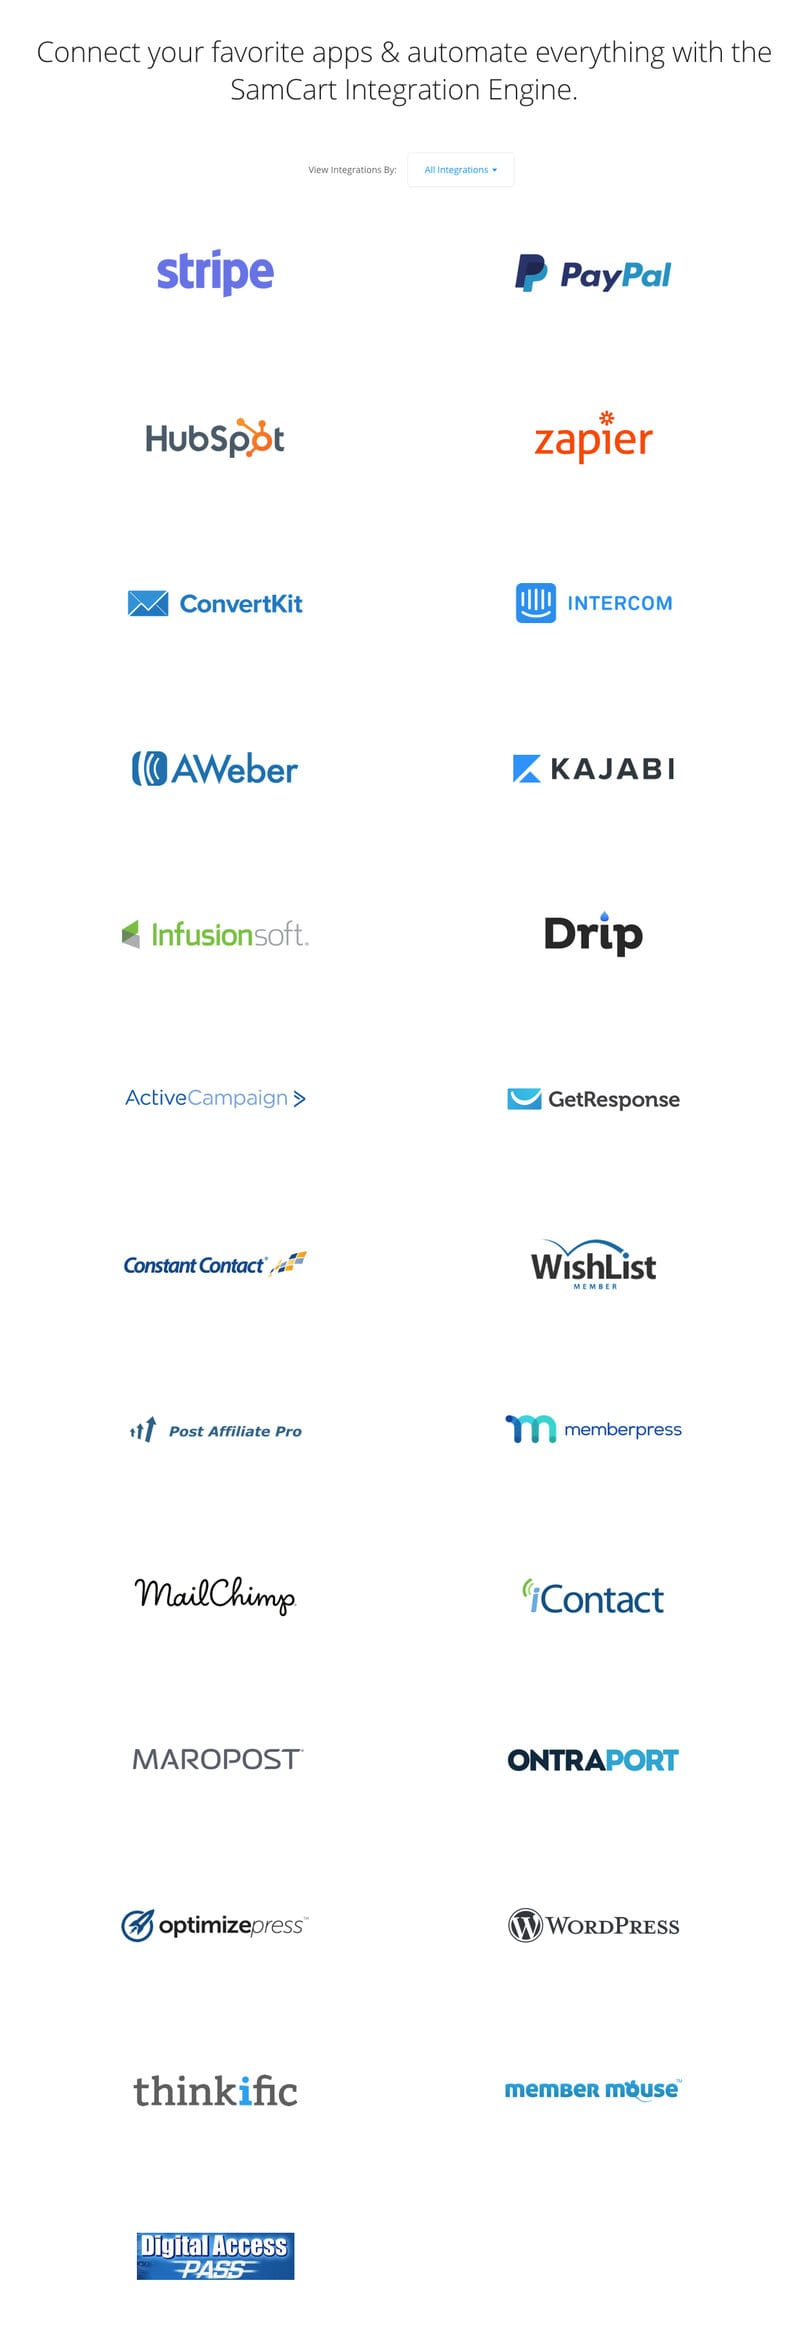 samcart app integrations